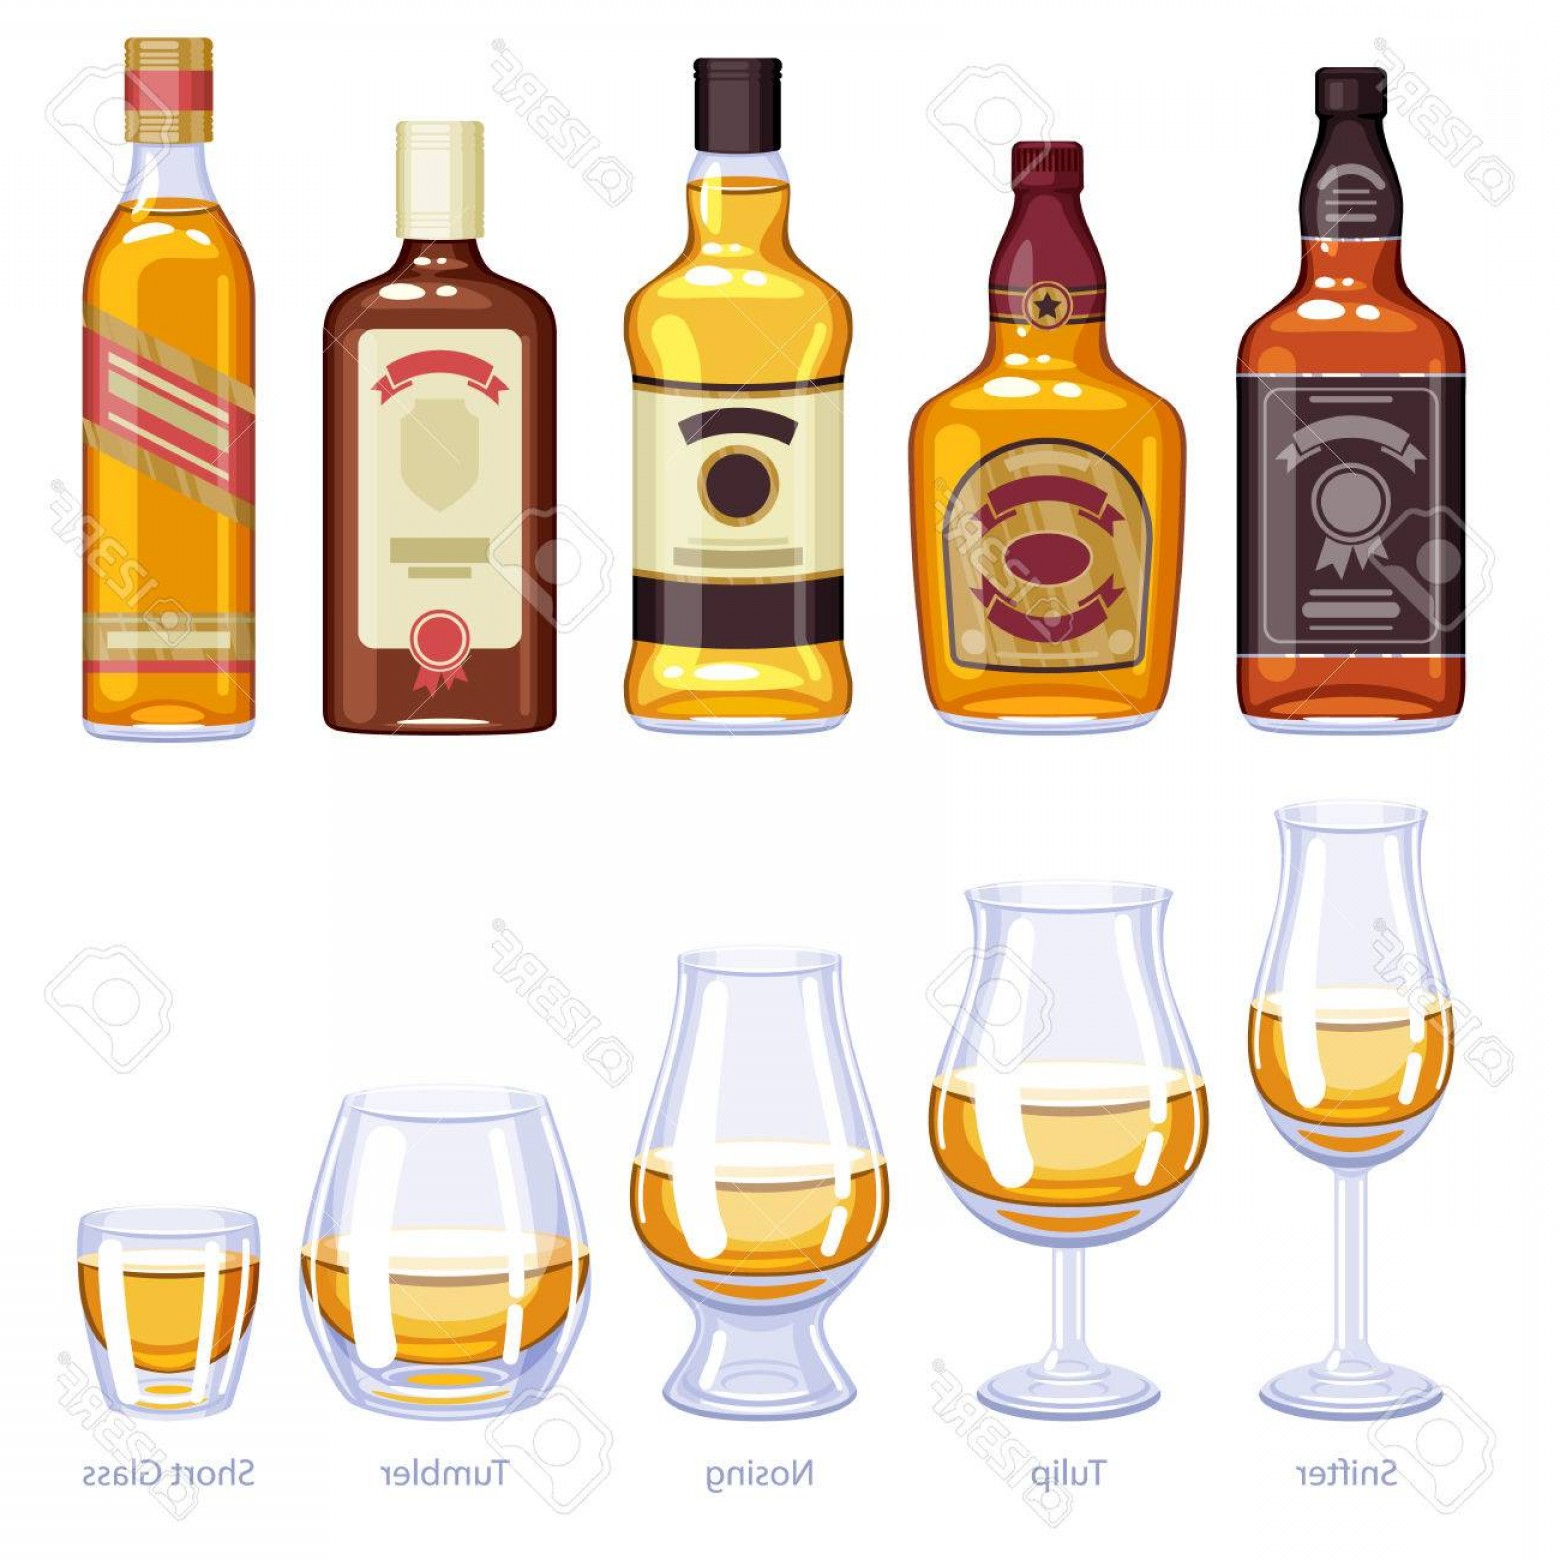 Alcohol Vector: Photostock Vector Whisky Bottles And Glusses Icons Set Alcohol Vector Illustration Snifter Tulip Nosing Tumbler Short